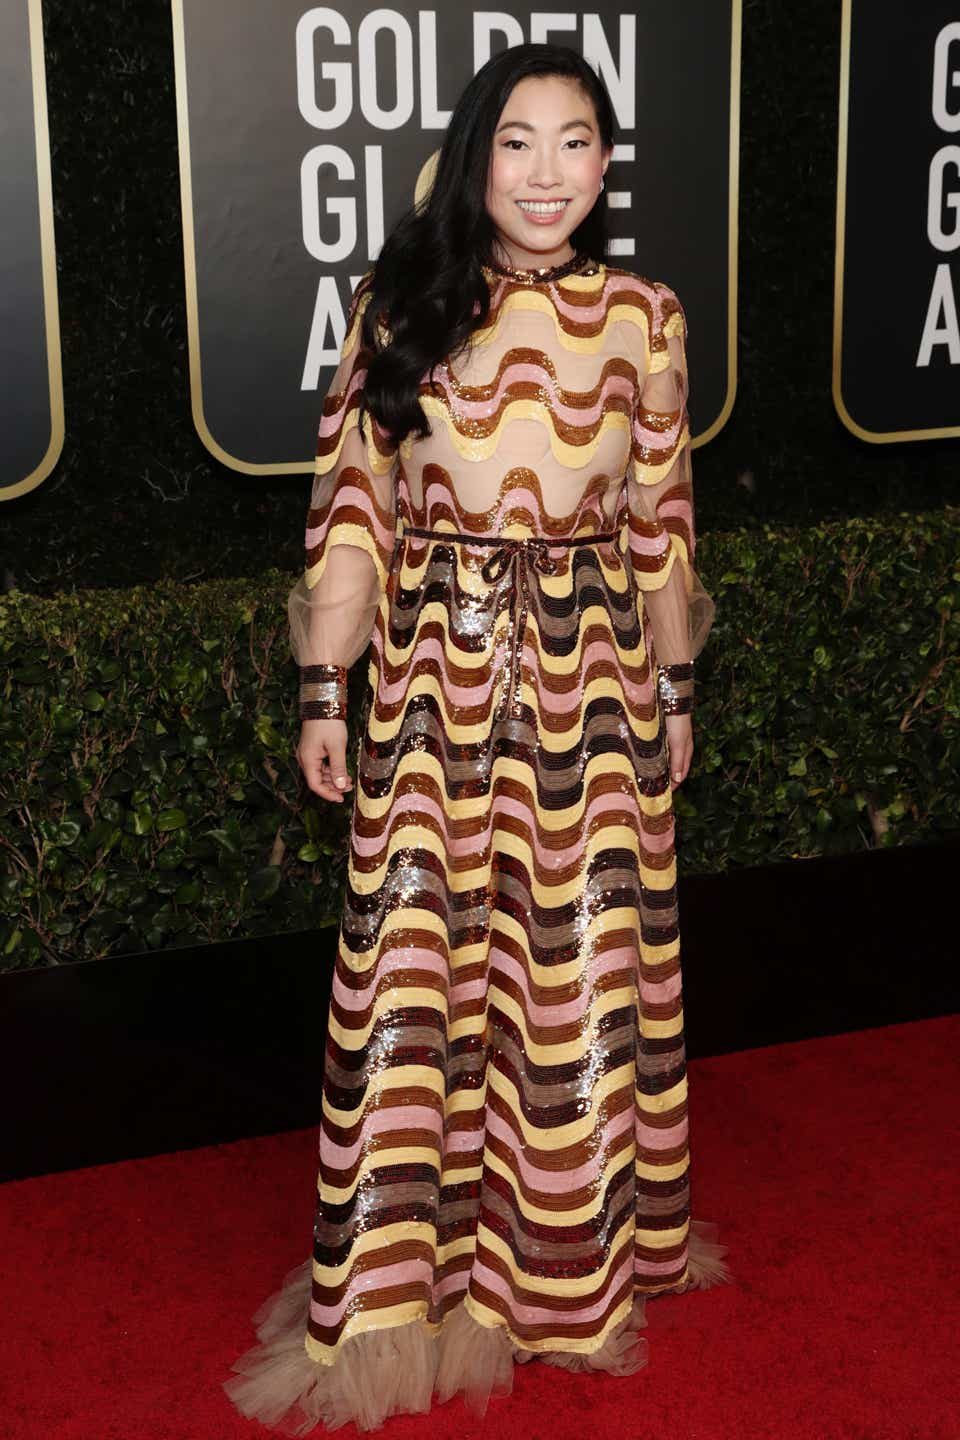 Awkwafina wearing a patterned dress on the Golden Globes red carpet.